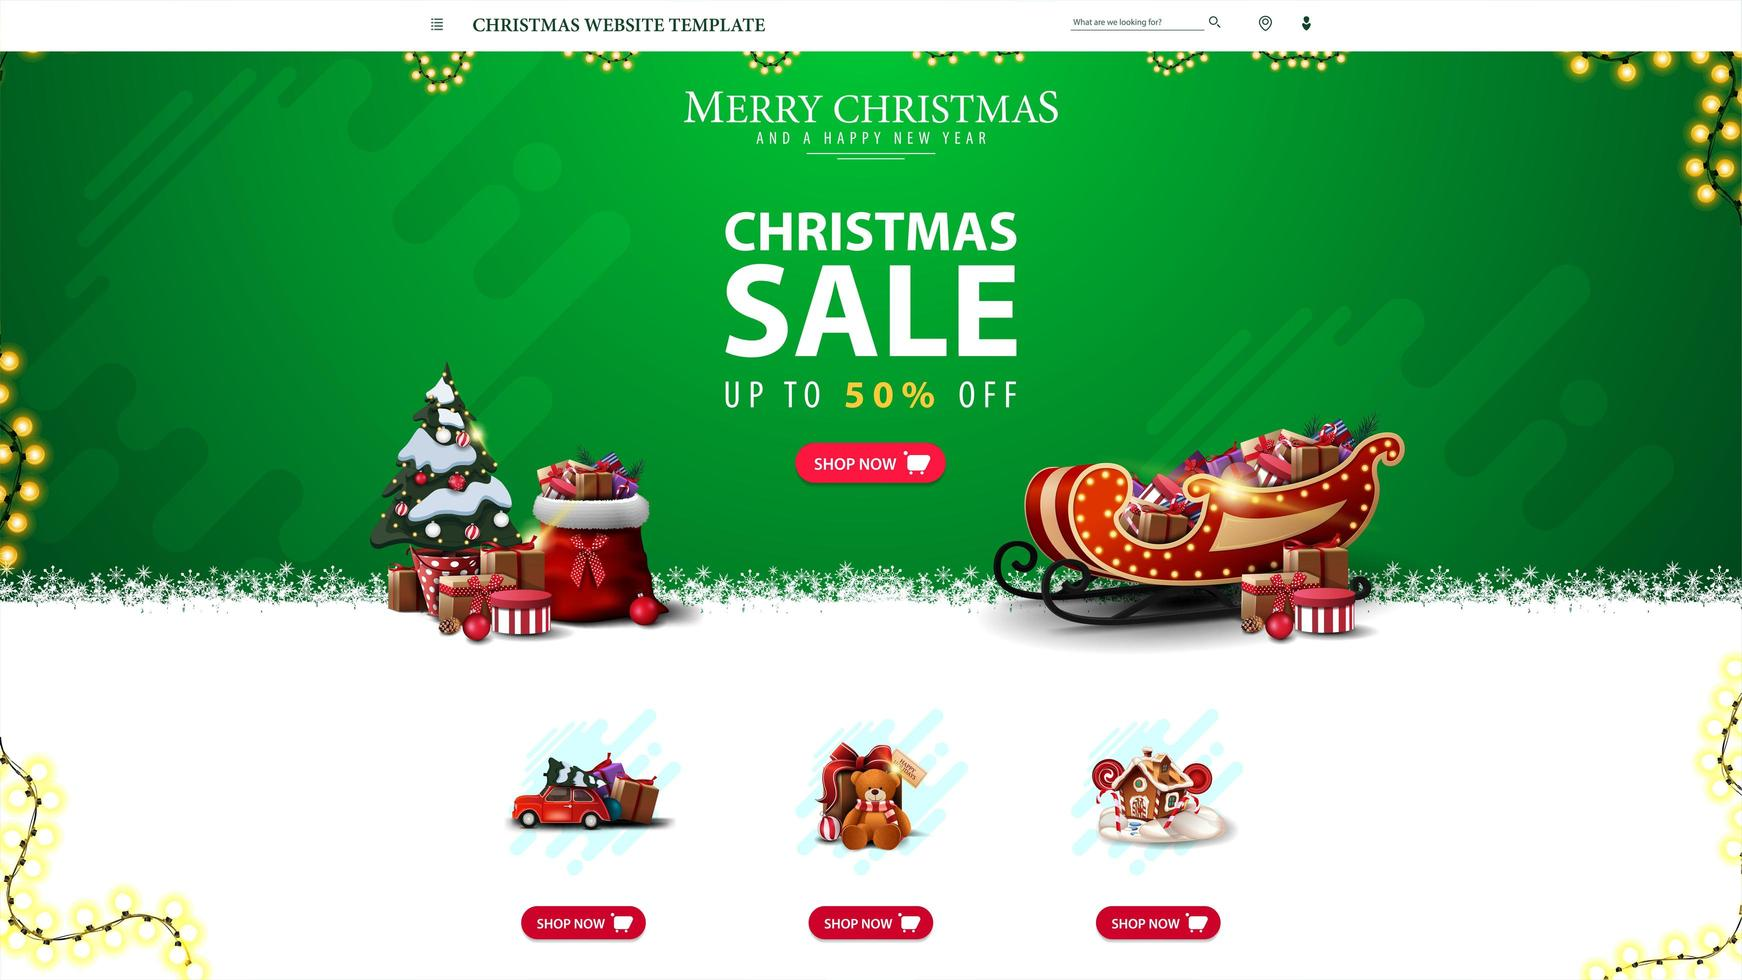 Christmas website template with discount offer, green Christmas website design for your creativity vector